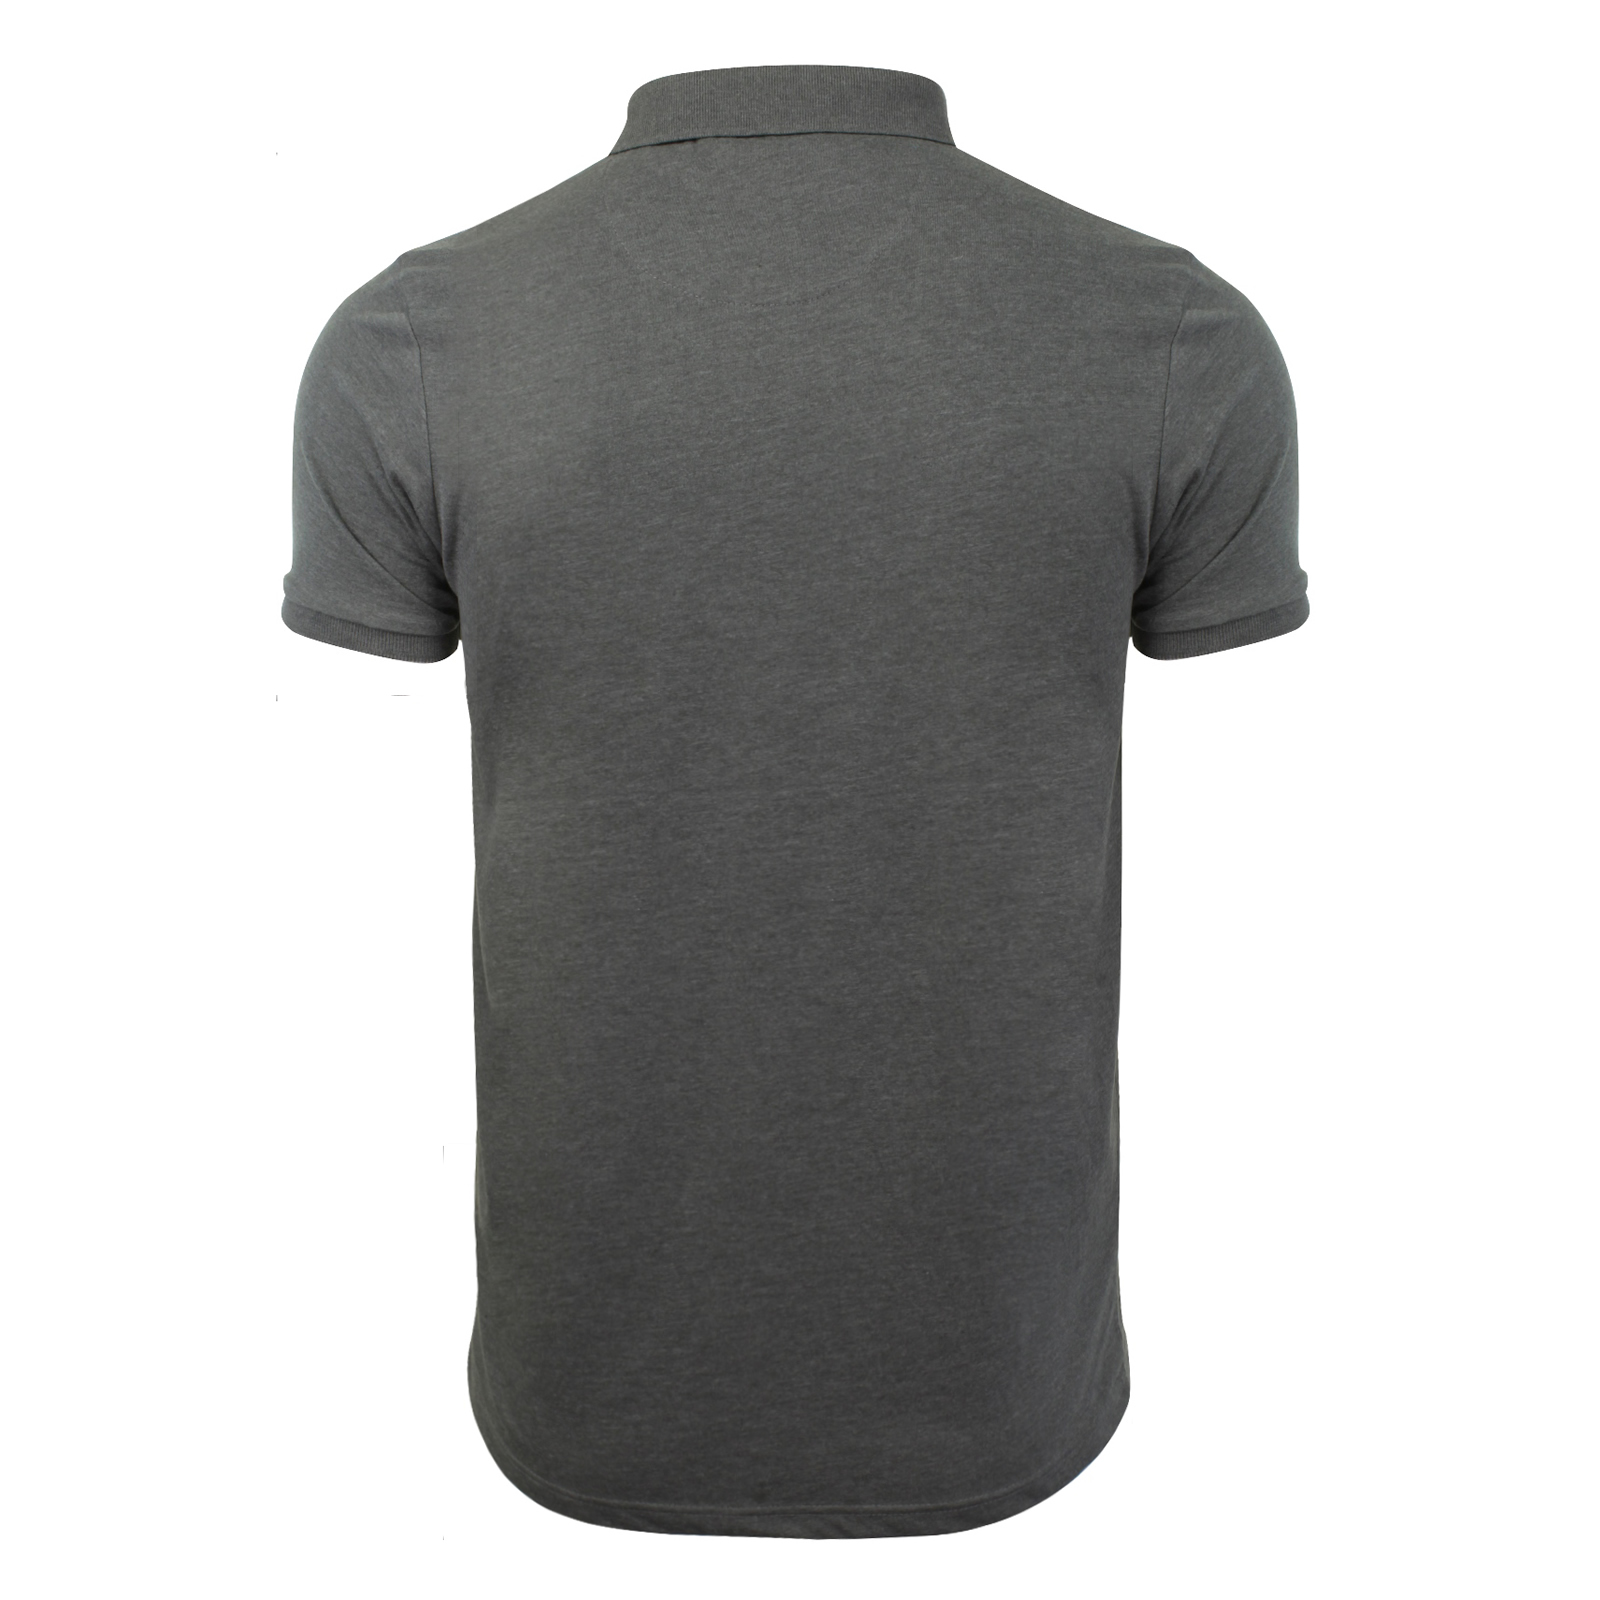 Mens-Polo-T-Shirt-Brave-Soul-Julius-Cotton-Collared-Short-Sleeve-Casual-Top thumbnail 6